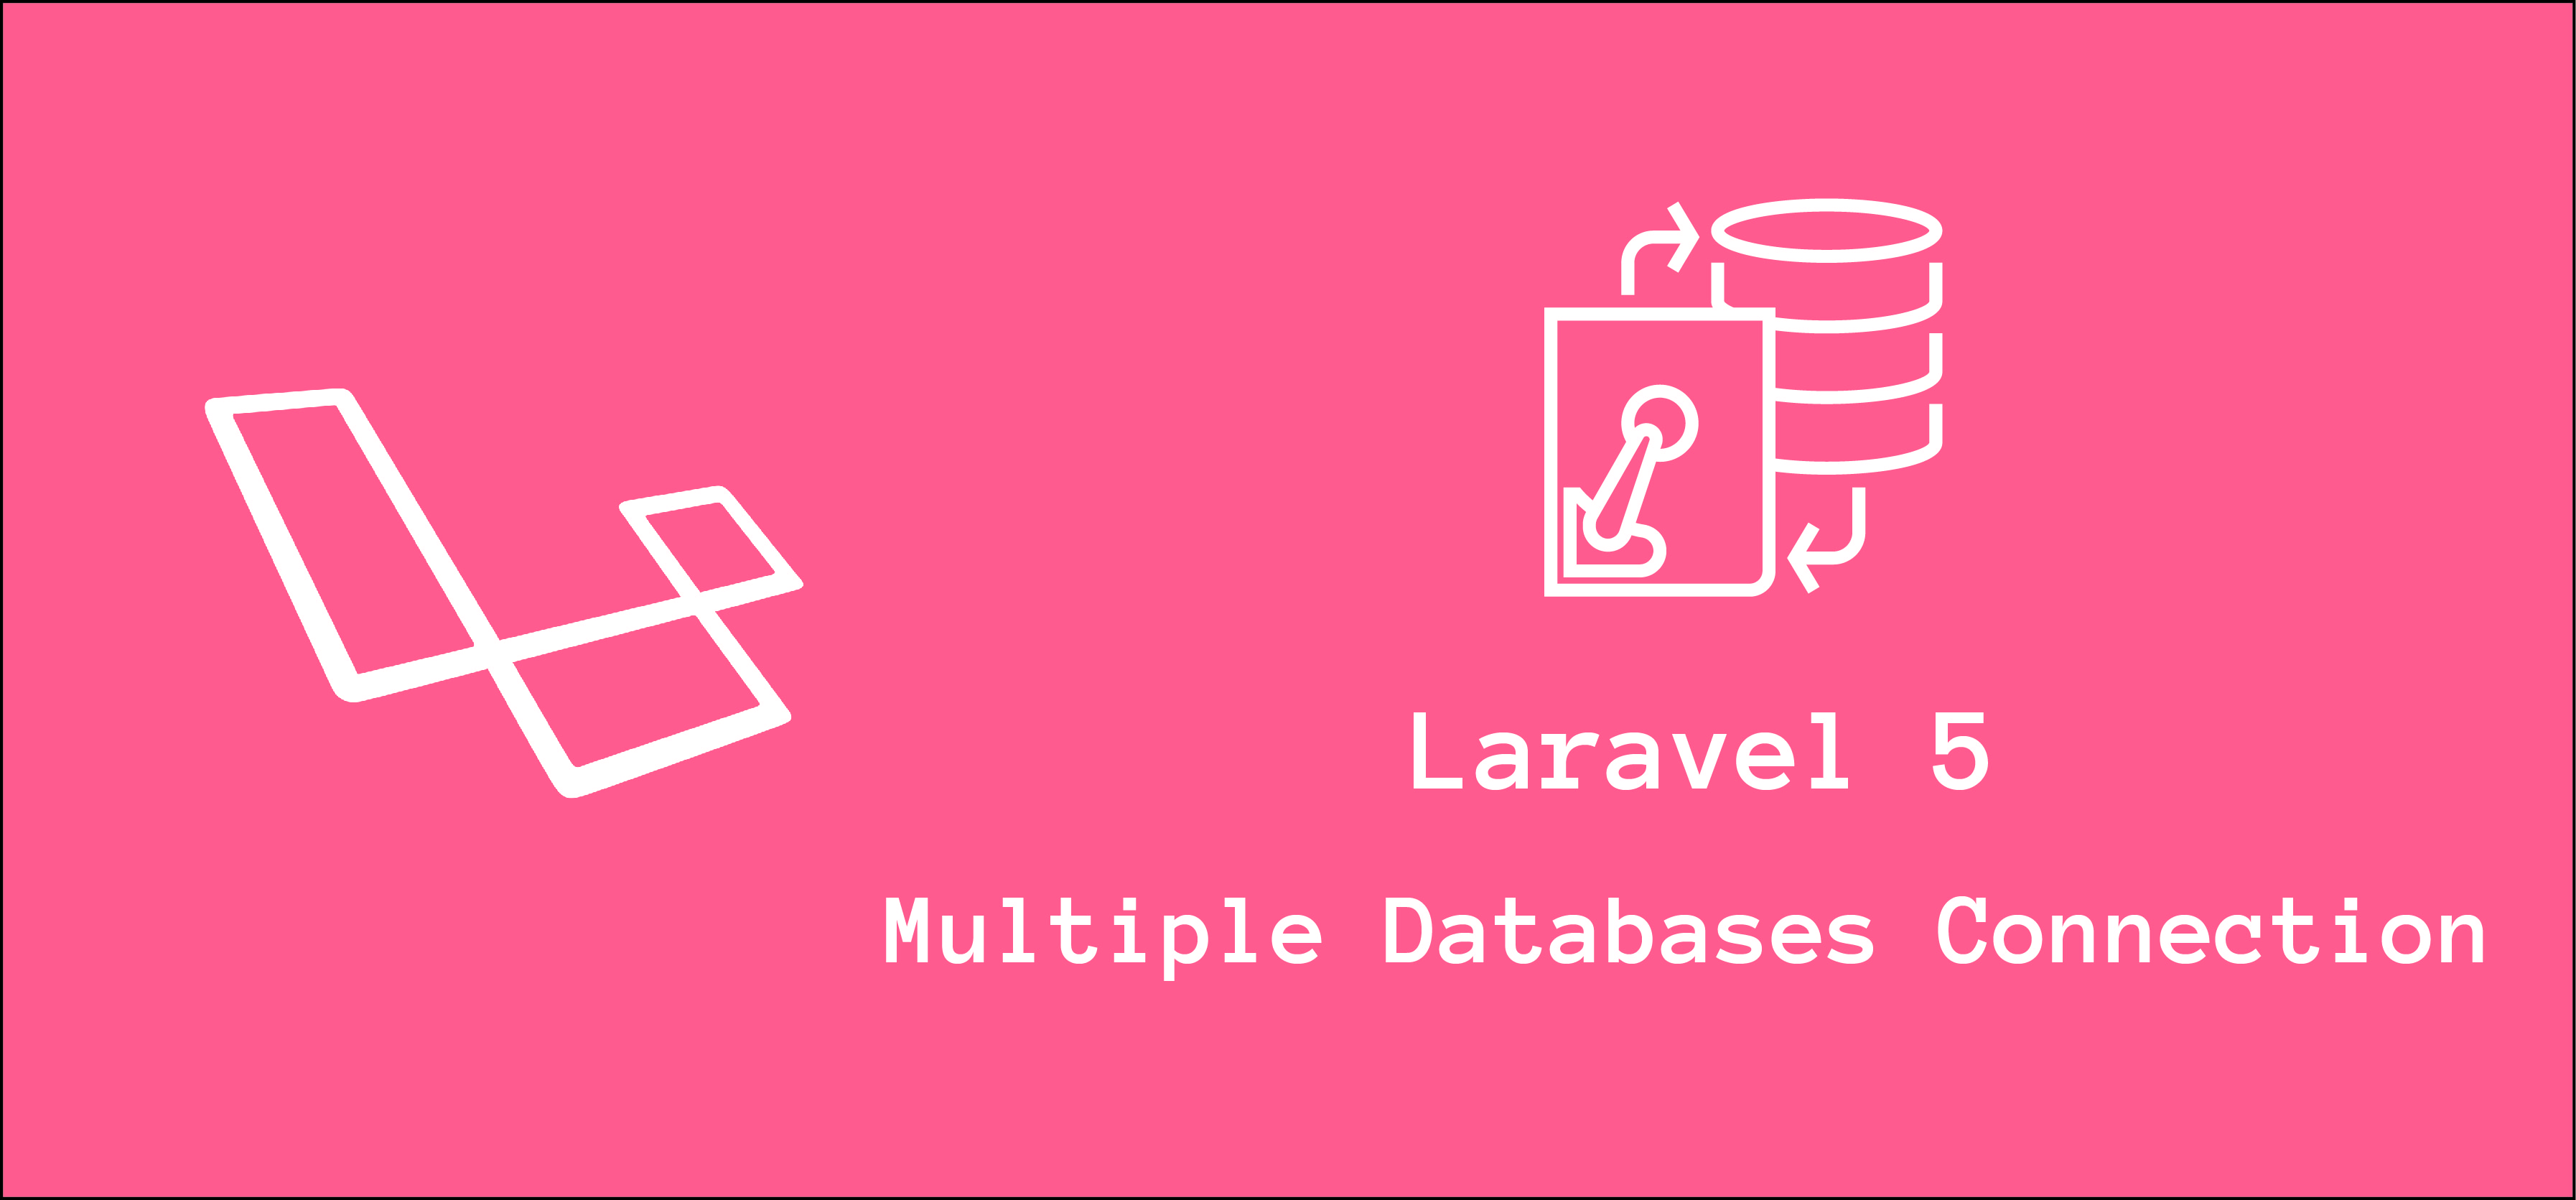 Laravel Seperate Database Connections for Read and Write Queries - MySQL, SQL Server